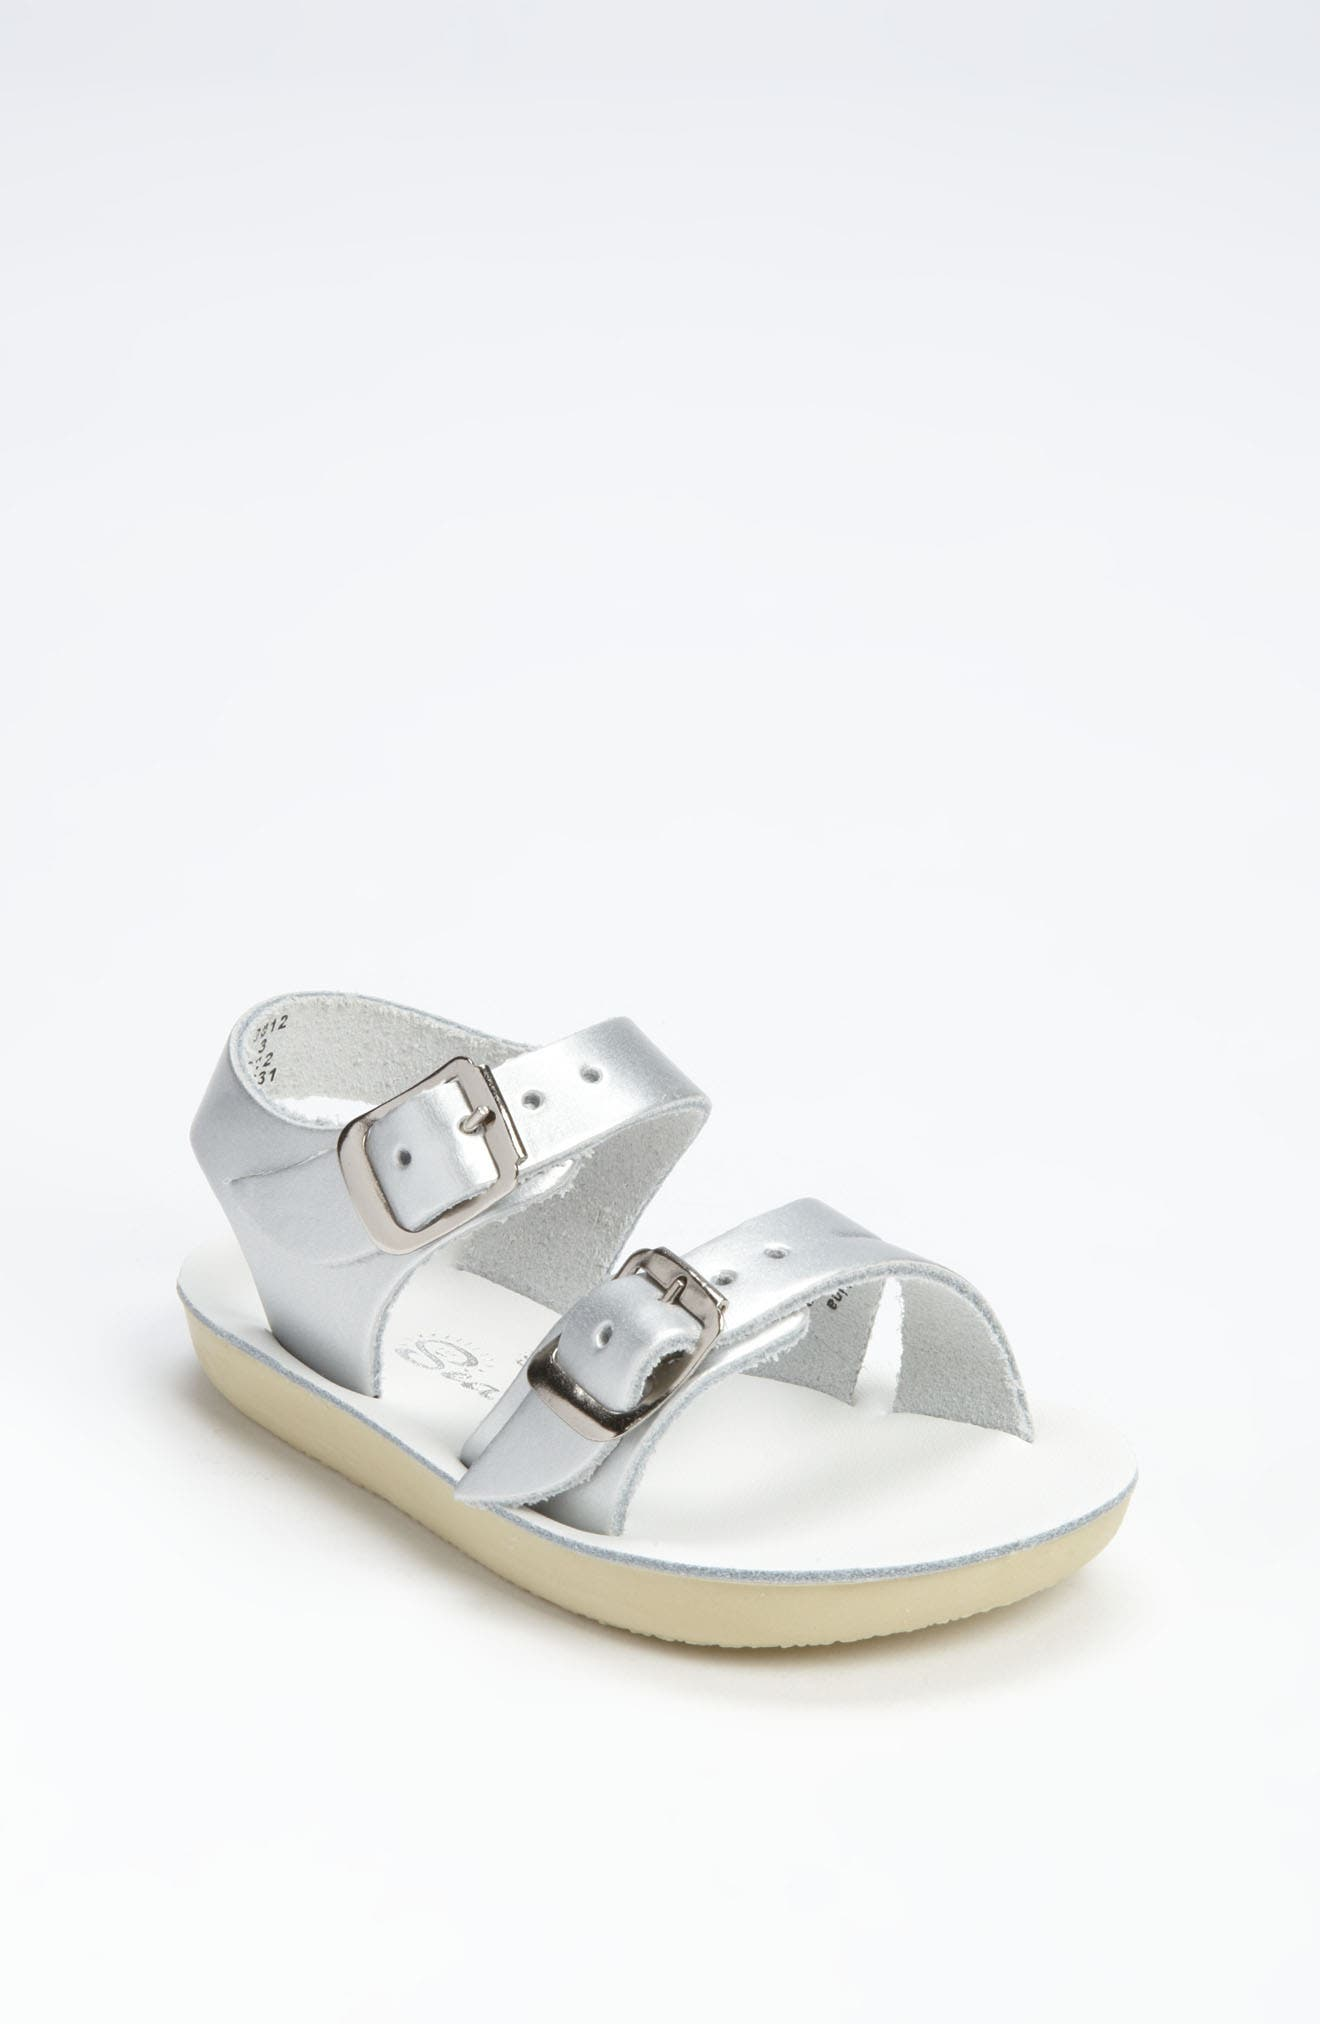 SALT WATER SANDALS BY HOY Sea Wee Water Friendly Sandal, Main, color, SILVER